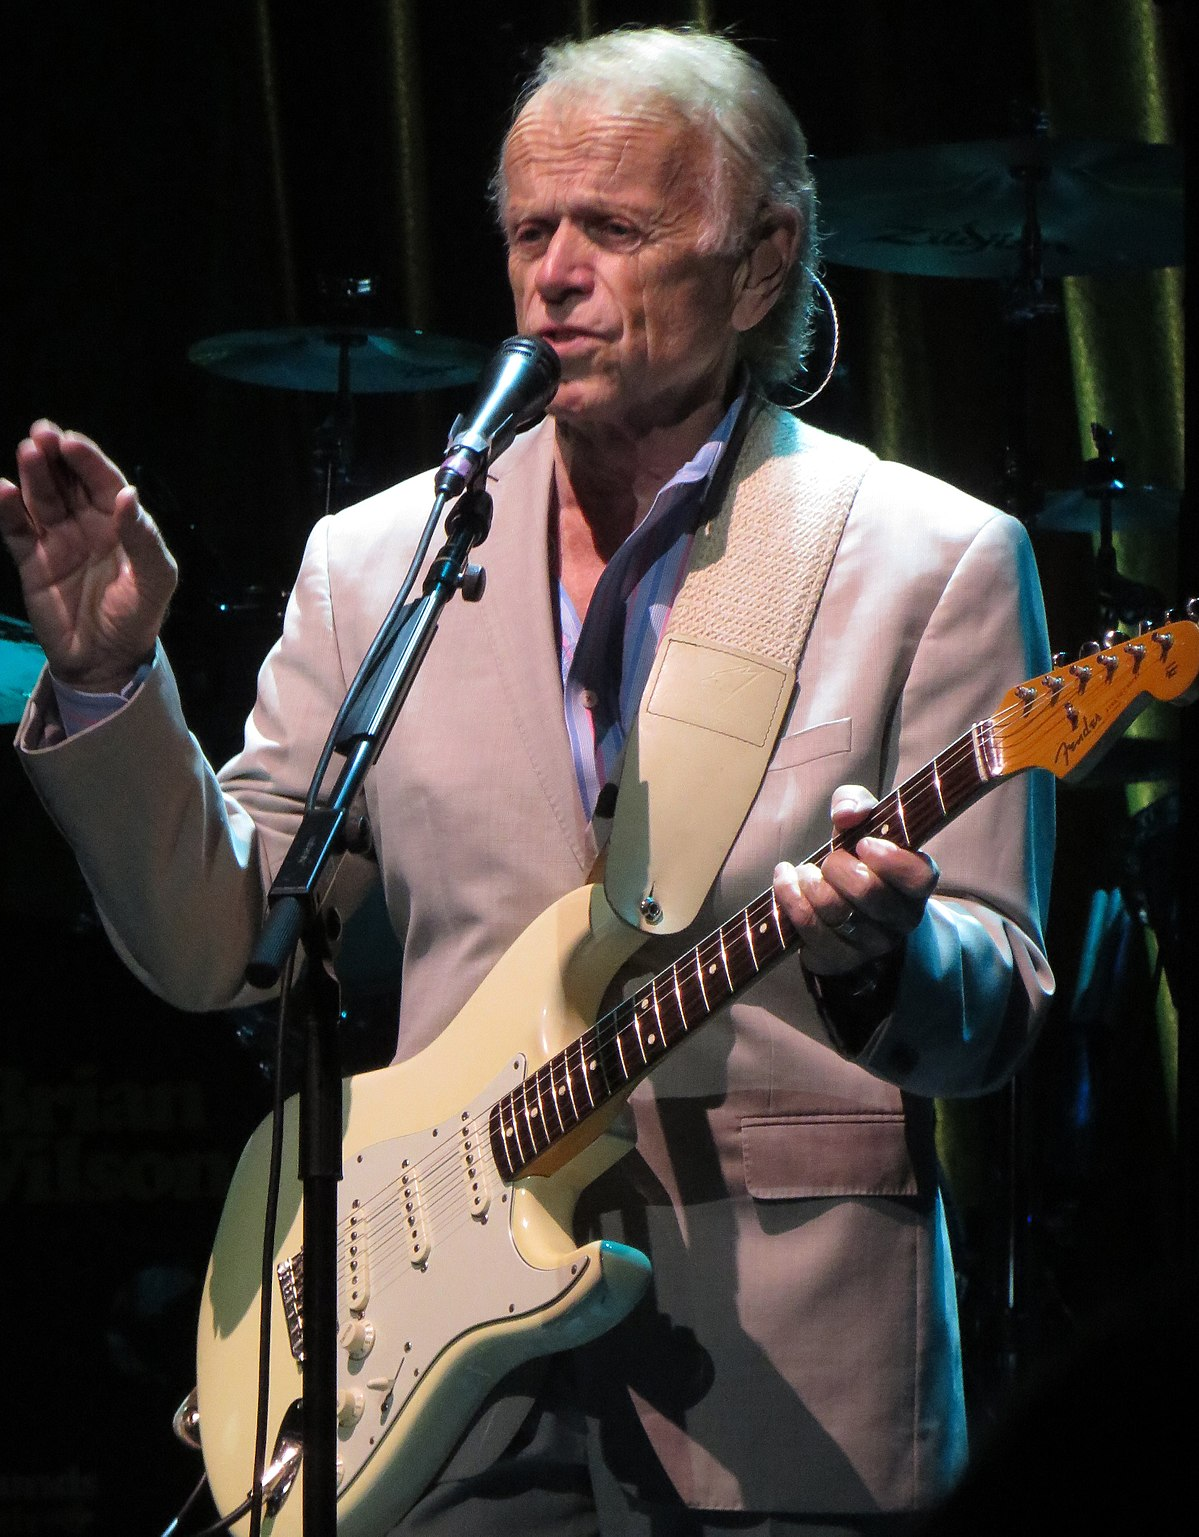 Al jardine wikipedia for Jardin jardine